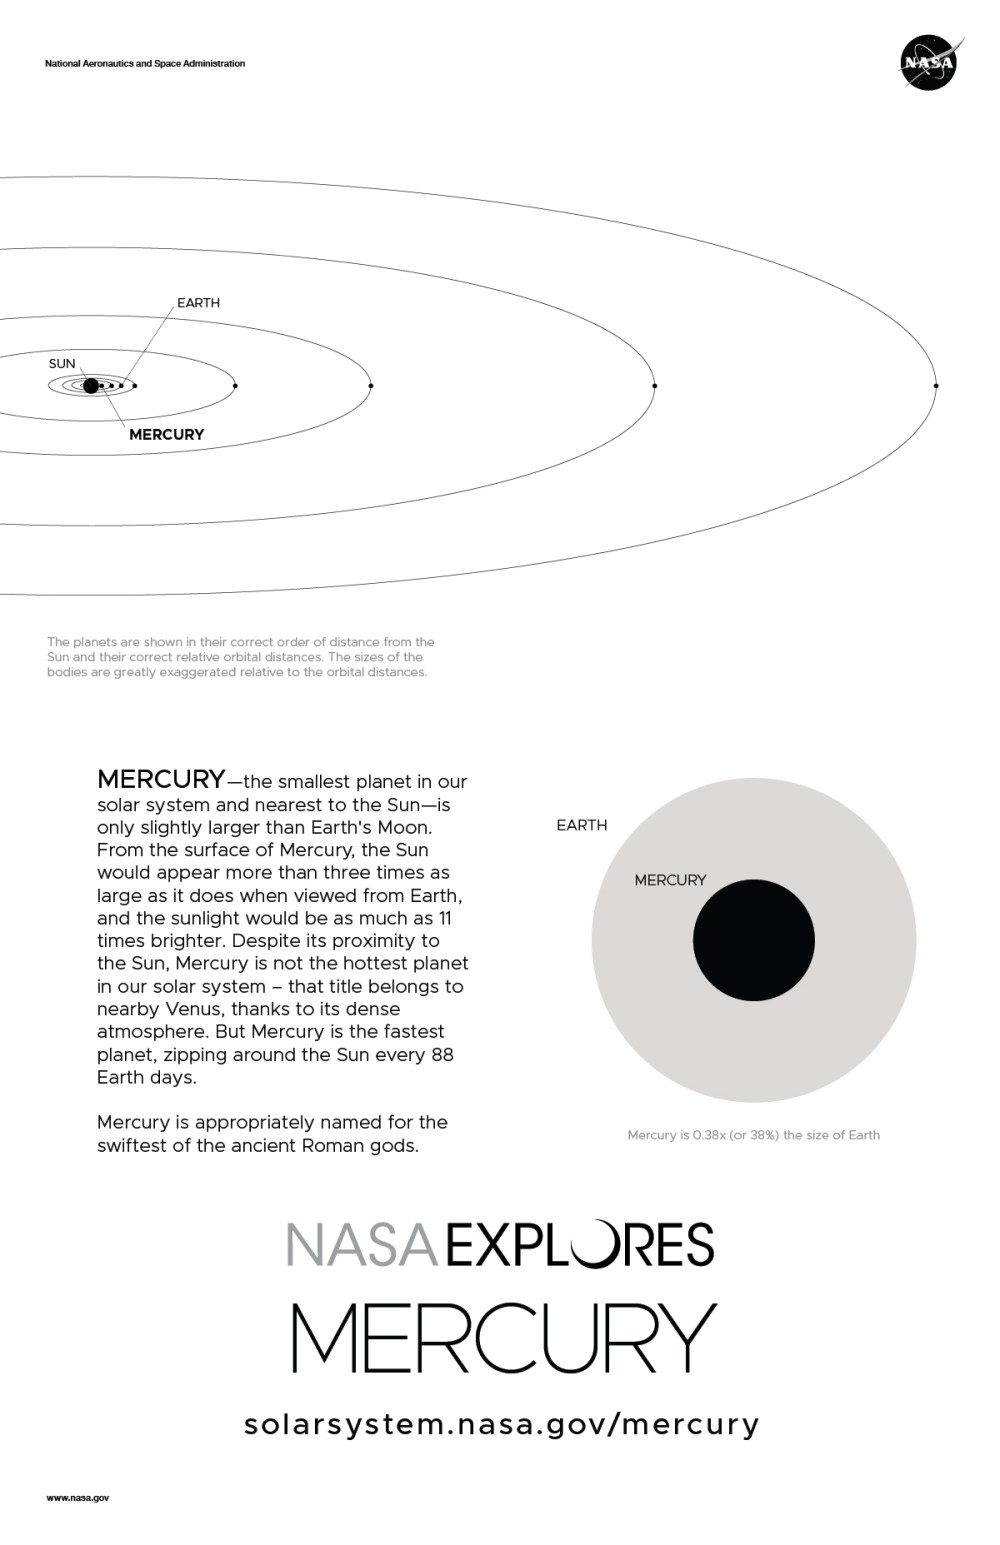 medium resolution of back of mercury poster with orbit diagram and size comparison